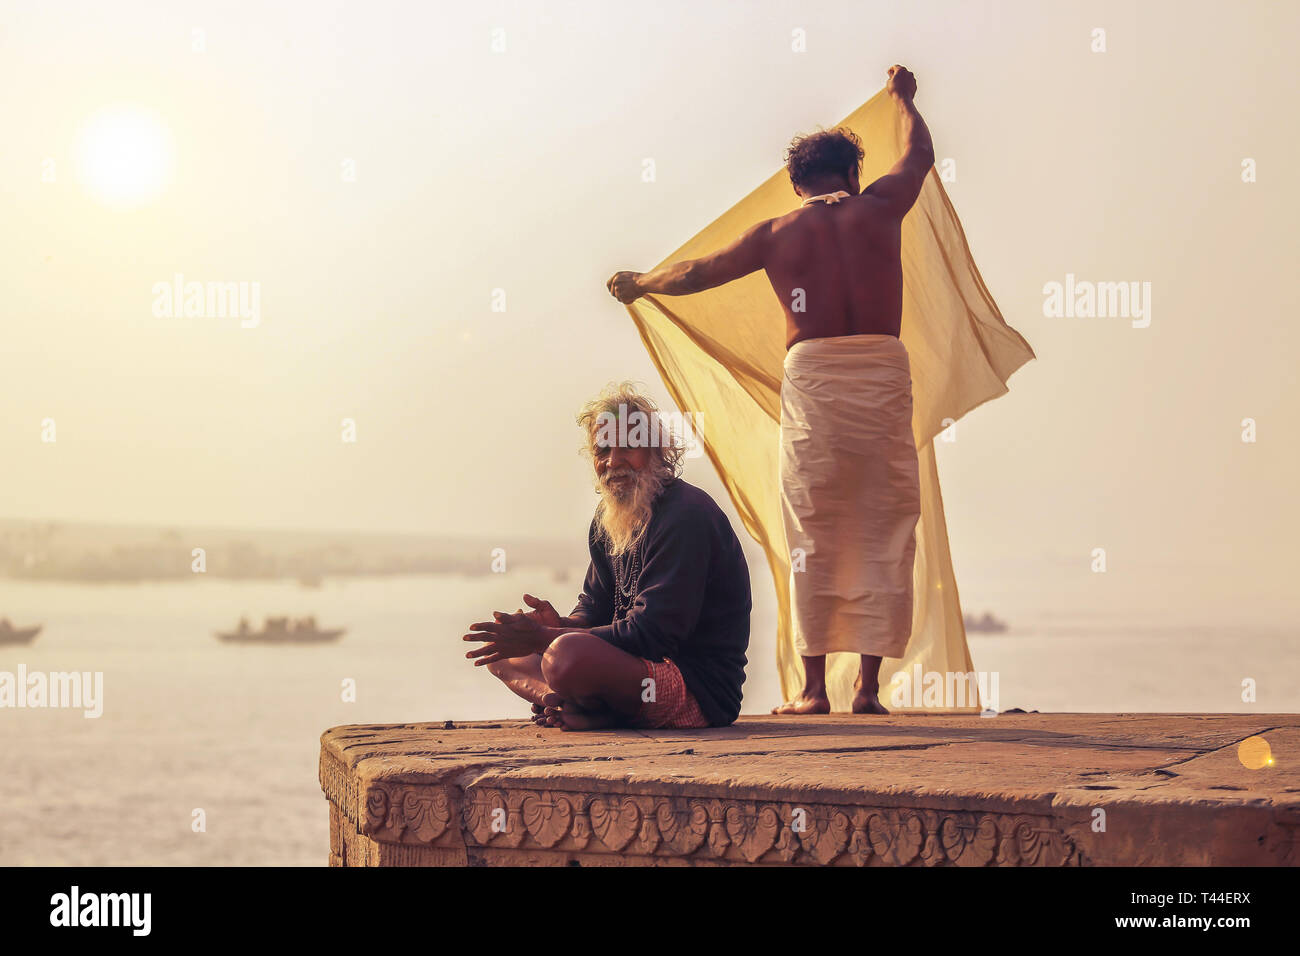 Aged man prepares for meditation while a pilgrim dries his clothes at Varanasi Ganges river ghat on foggy winter morning - Stock Image